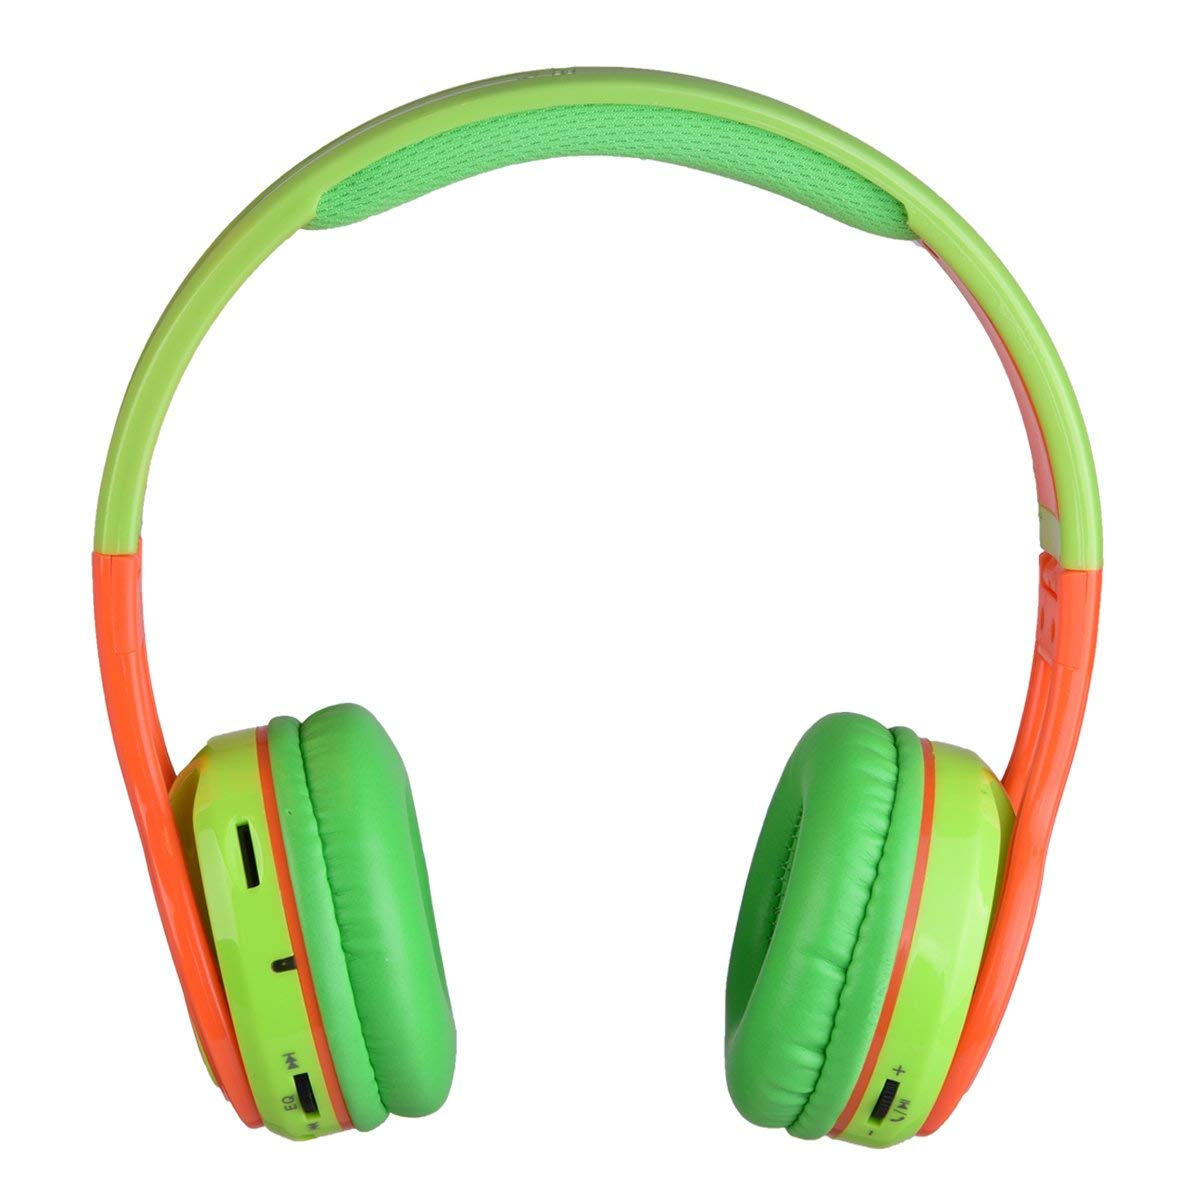 Contixo Kid Safe Over the Ear Foldable Wireless Bluetooth Headphones with Volume Limiter, Built-in Microphone, Micro SD Card Music Player, and FM Stereo Radio, Green/Orange (New Open Box)